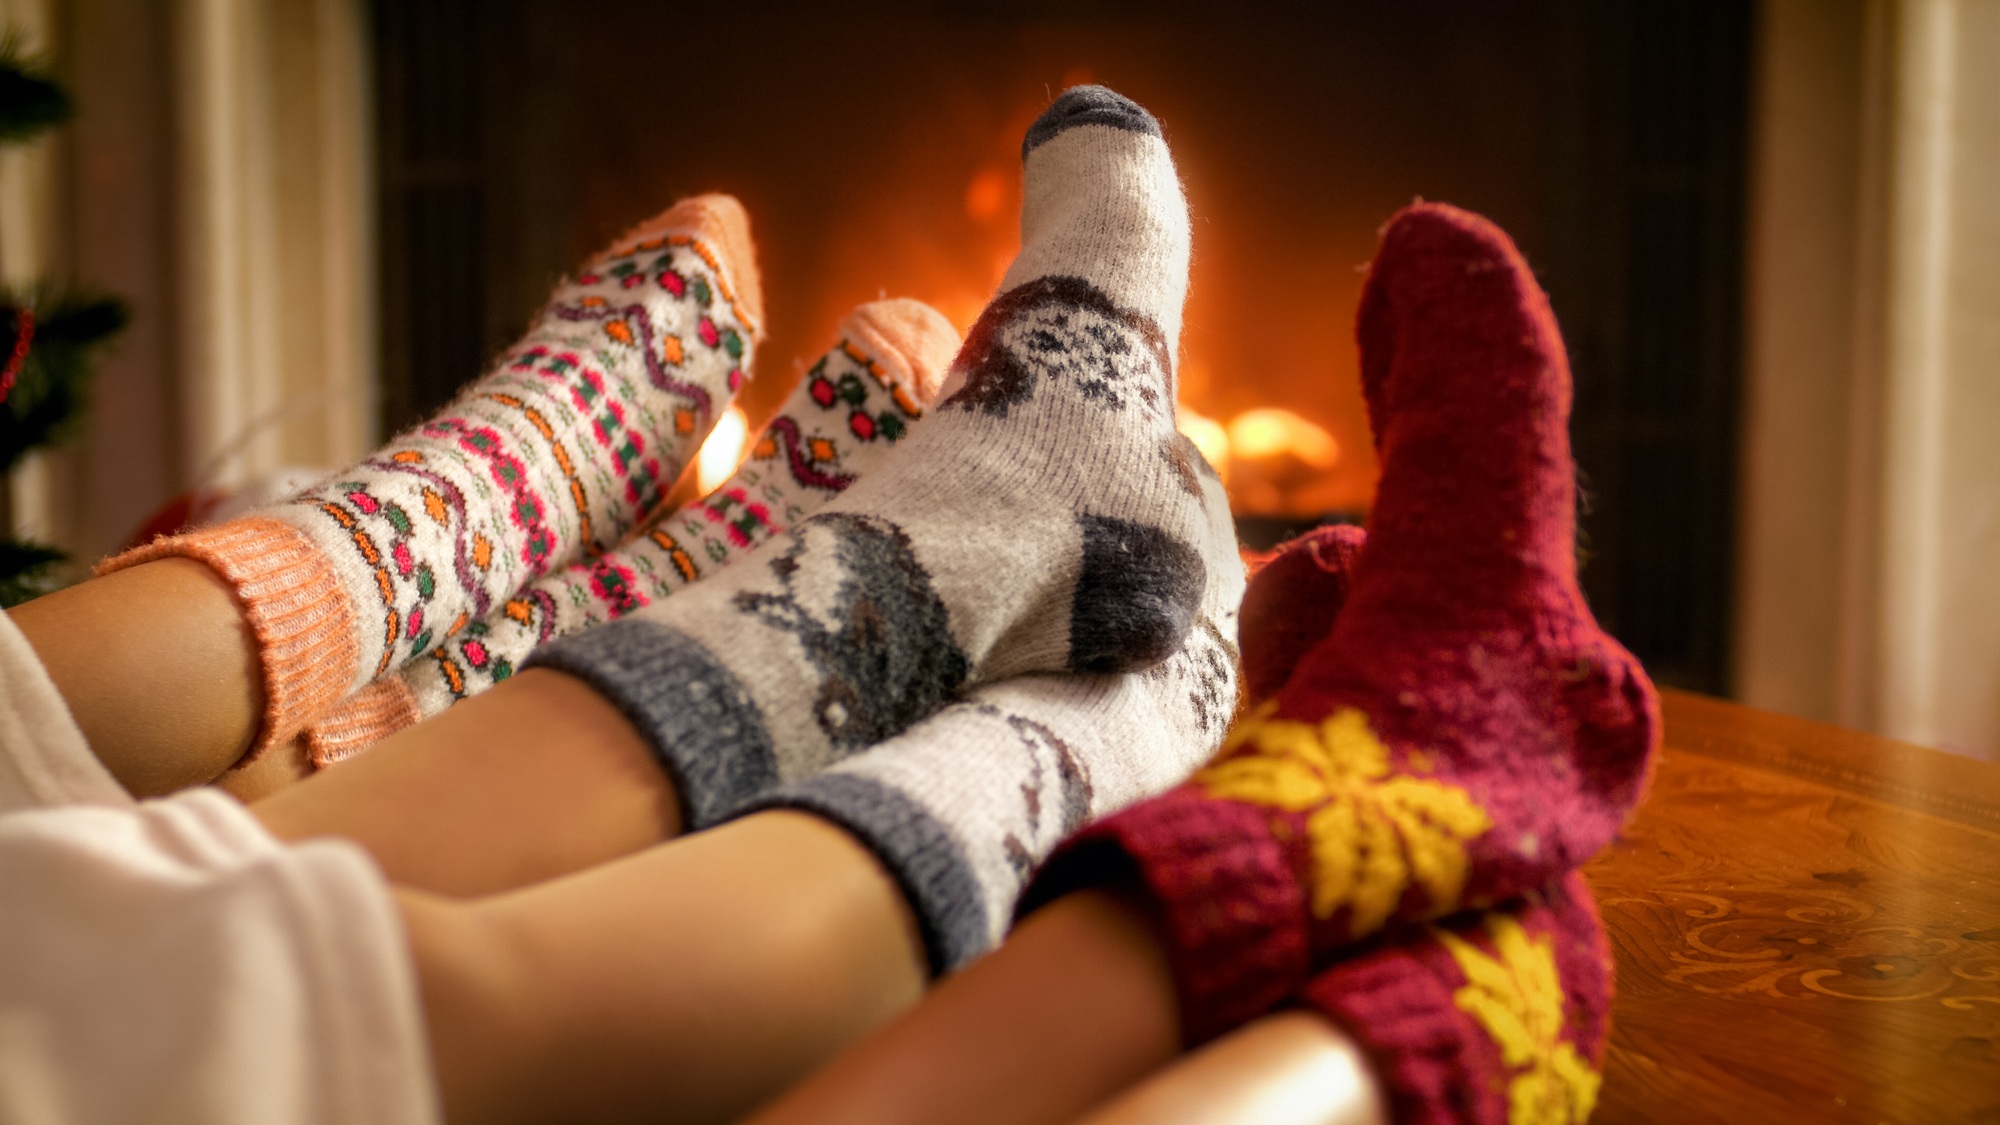 Remember to Winterize Your Home to Conserve Energy and Keep Warm